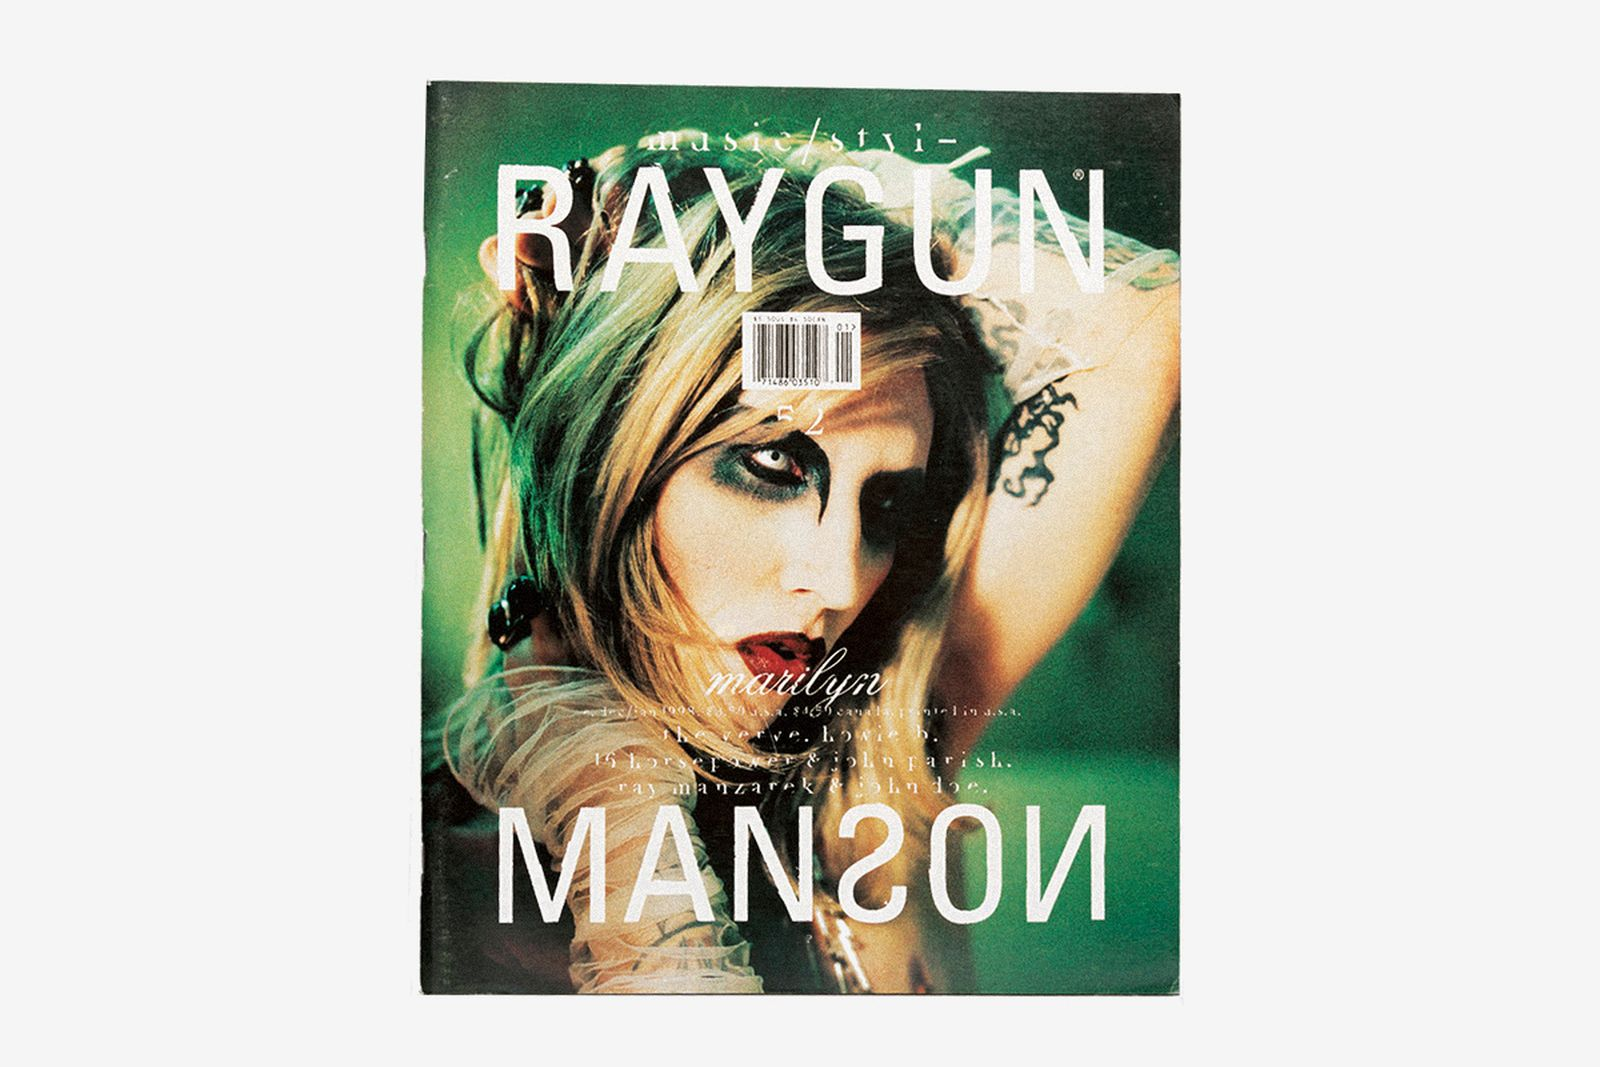 inside cult rock mag defined grunge aesthetic main Ray Gun rizzoli